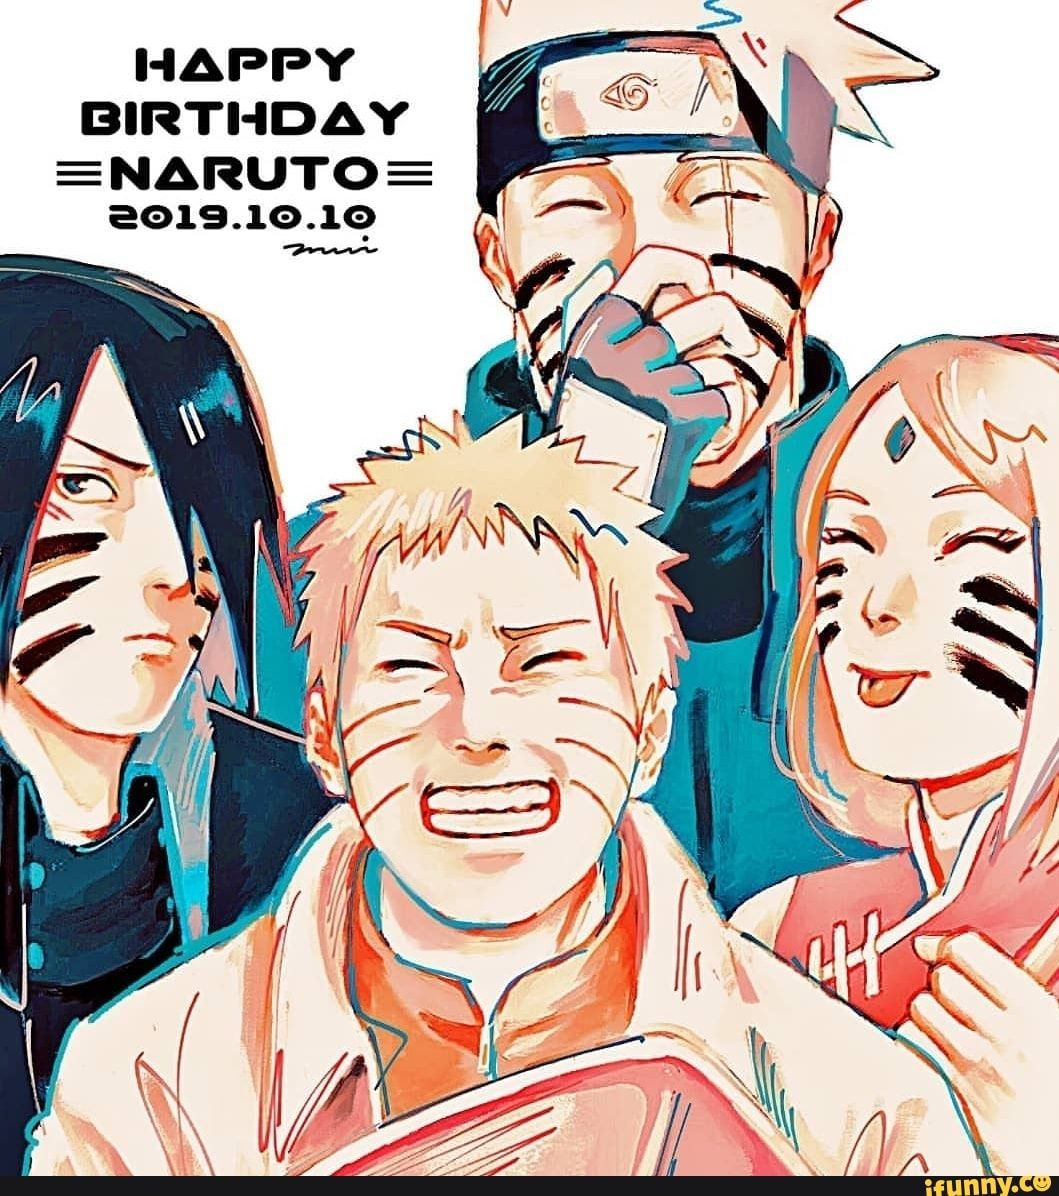 HAPPY BIRTHDAY E NARUTO E a019.1o.19 iFunny ) (With